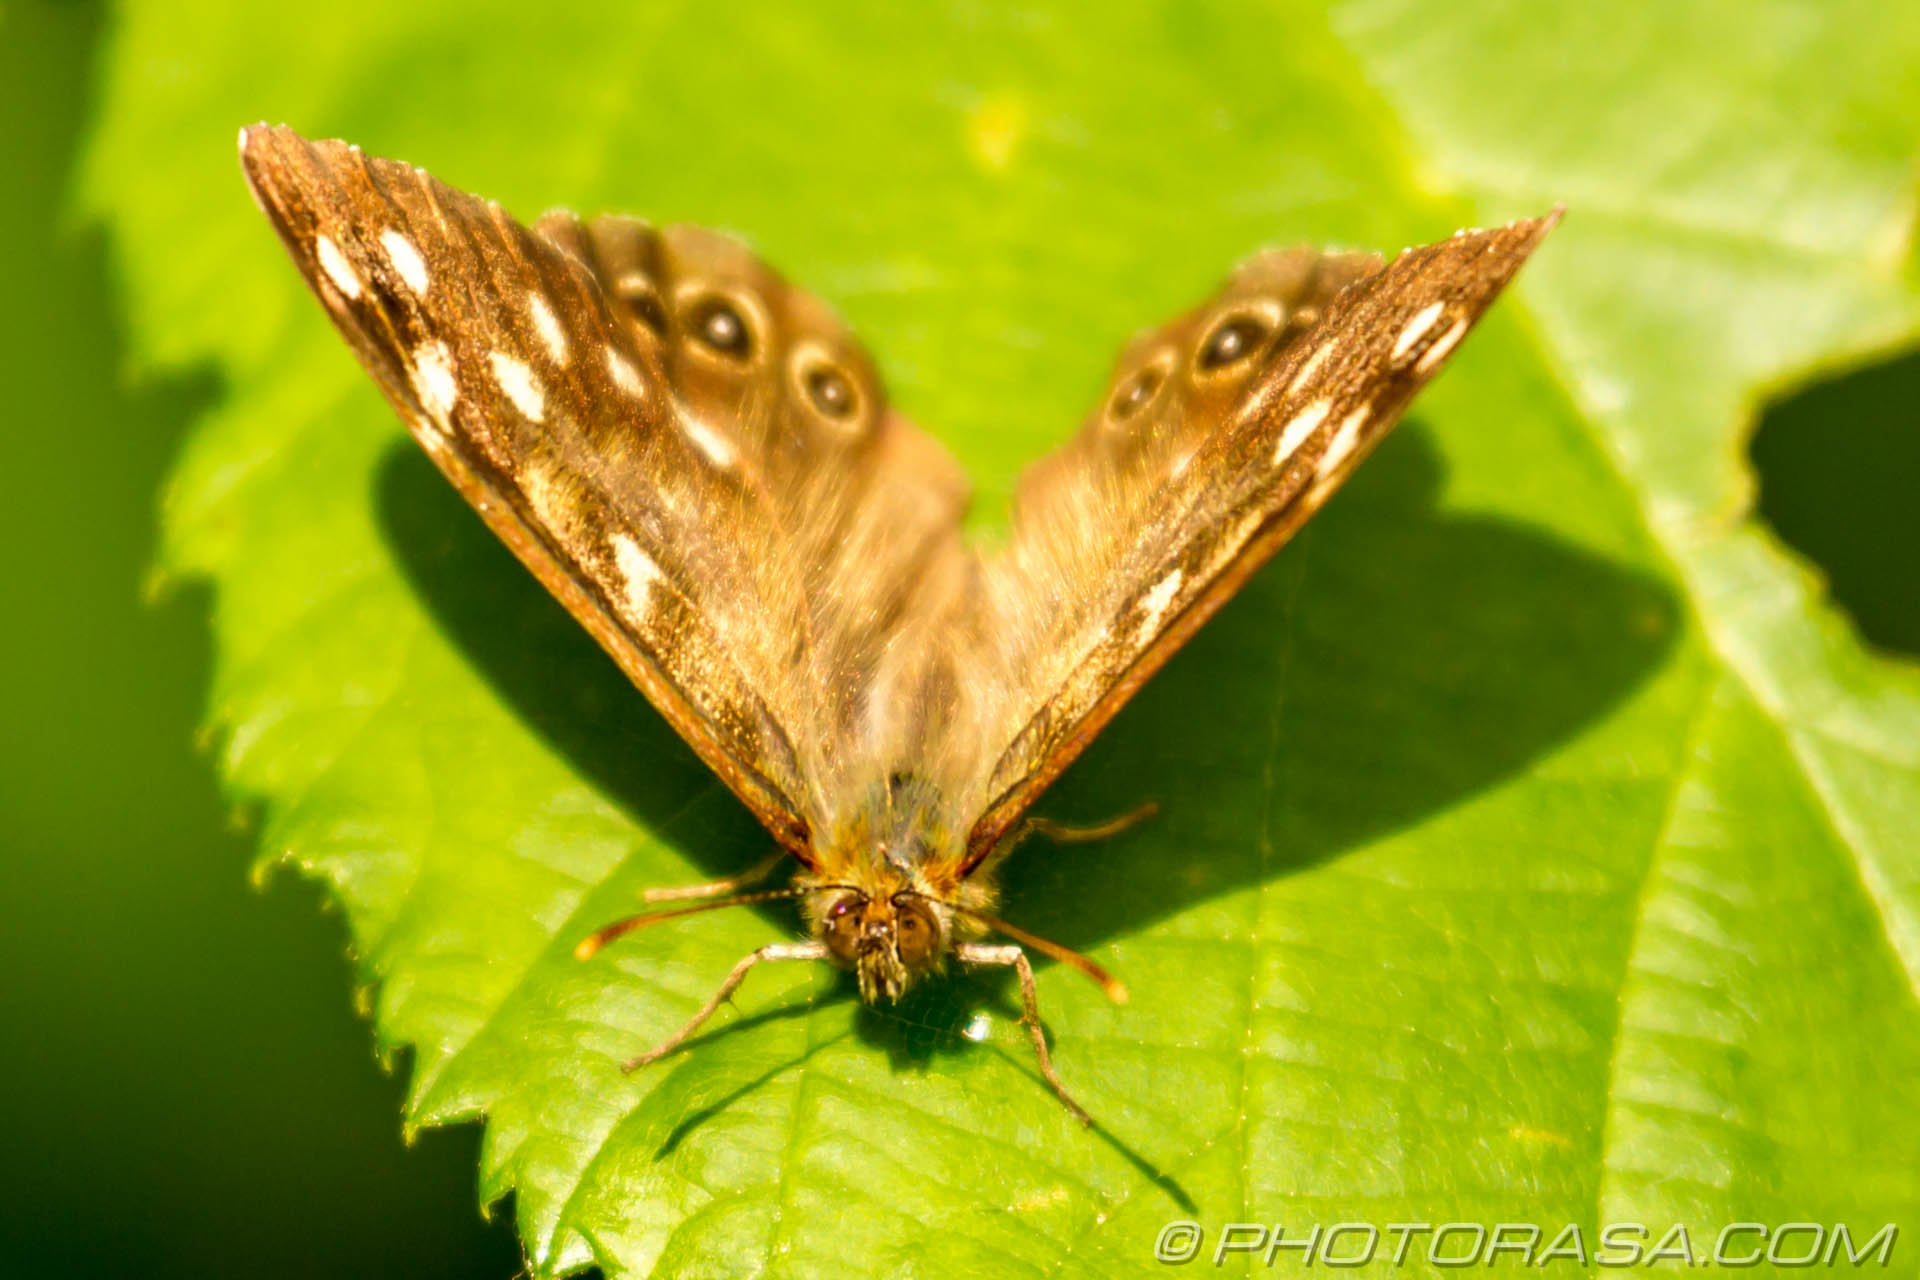 http://photorasa.com/speckled-wood-butterfly/front-view-2/